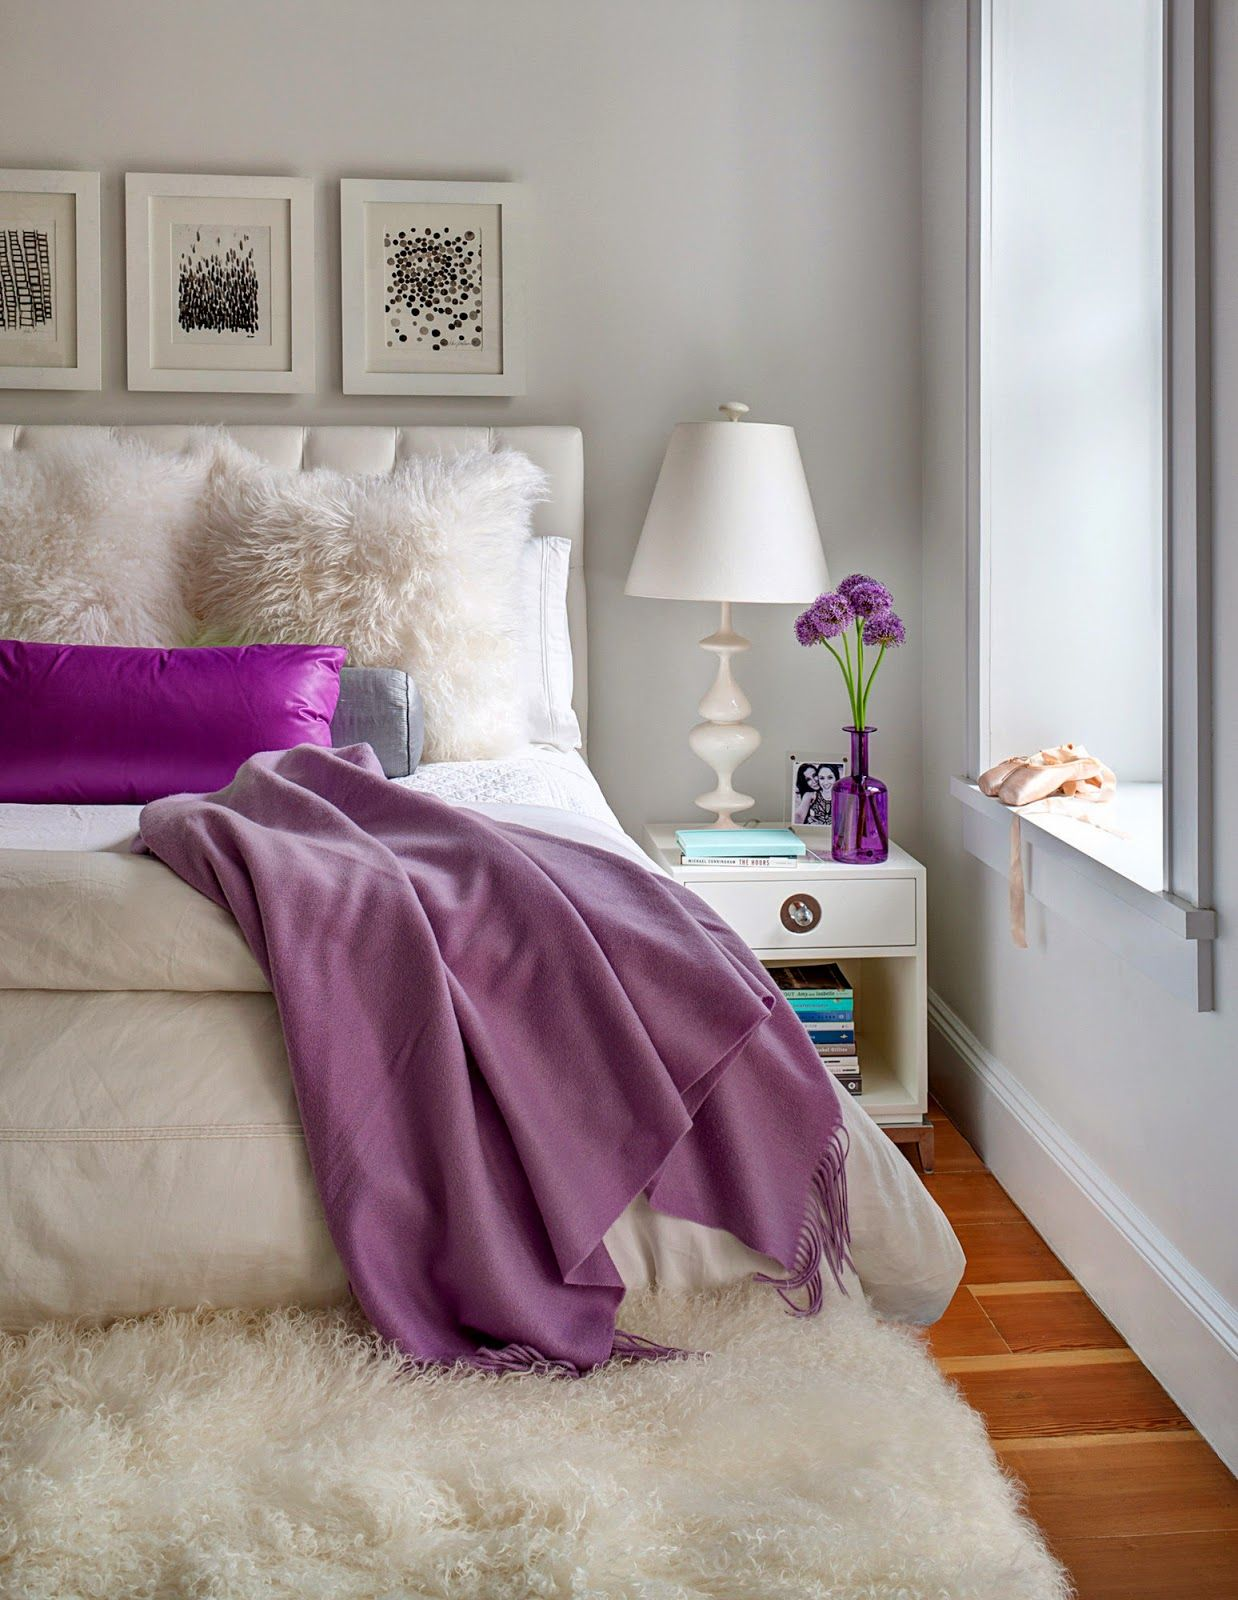 Amazing Cream And Purple Bedroom Ideas Part - 4: I Love The Texture The Rug Fives To This Bedroom And The Use Of A Throw Rug  And Throw Pillow In Slightly Different Shades Of Purple Adds A Nice Pop Of  Color ...